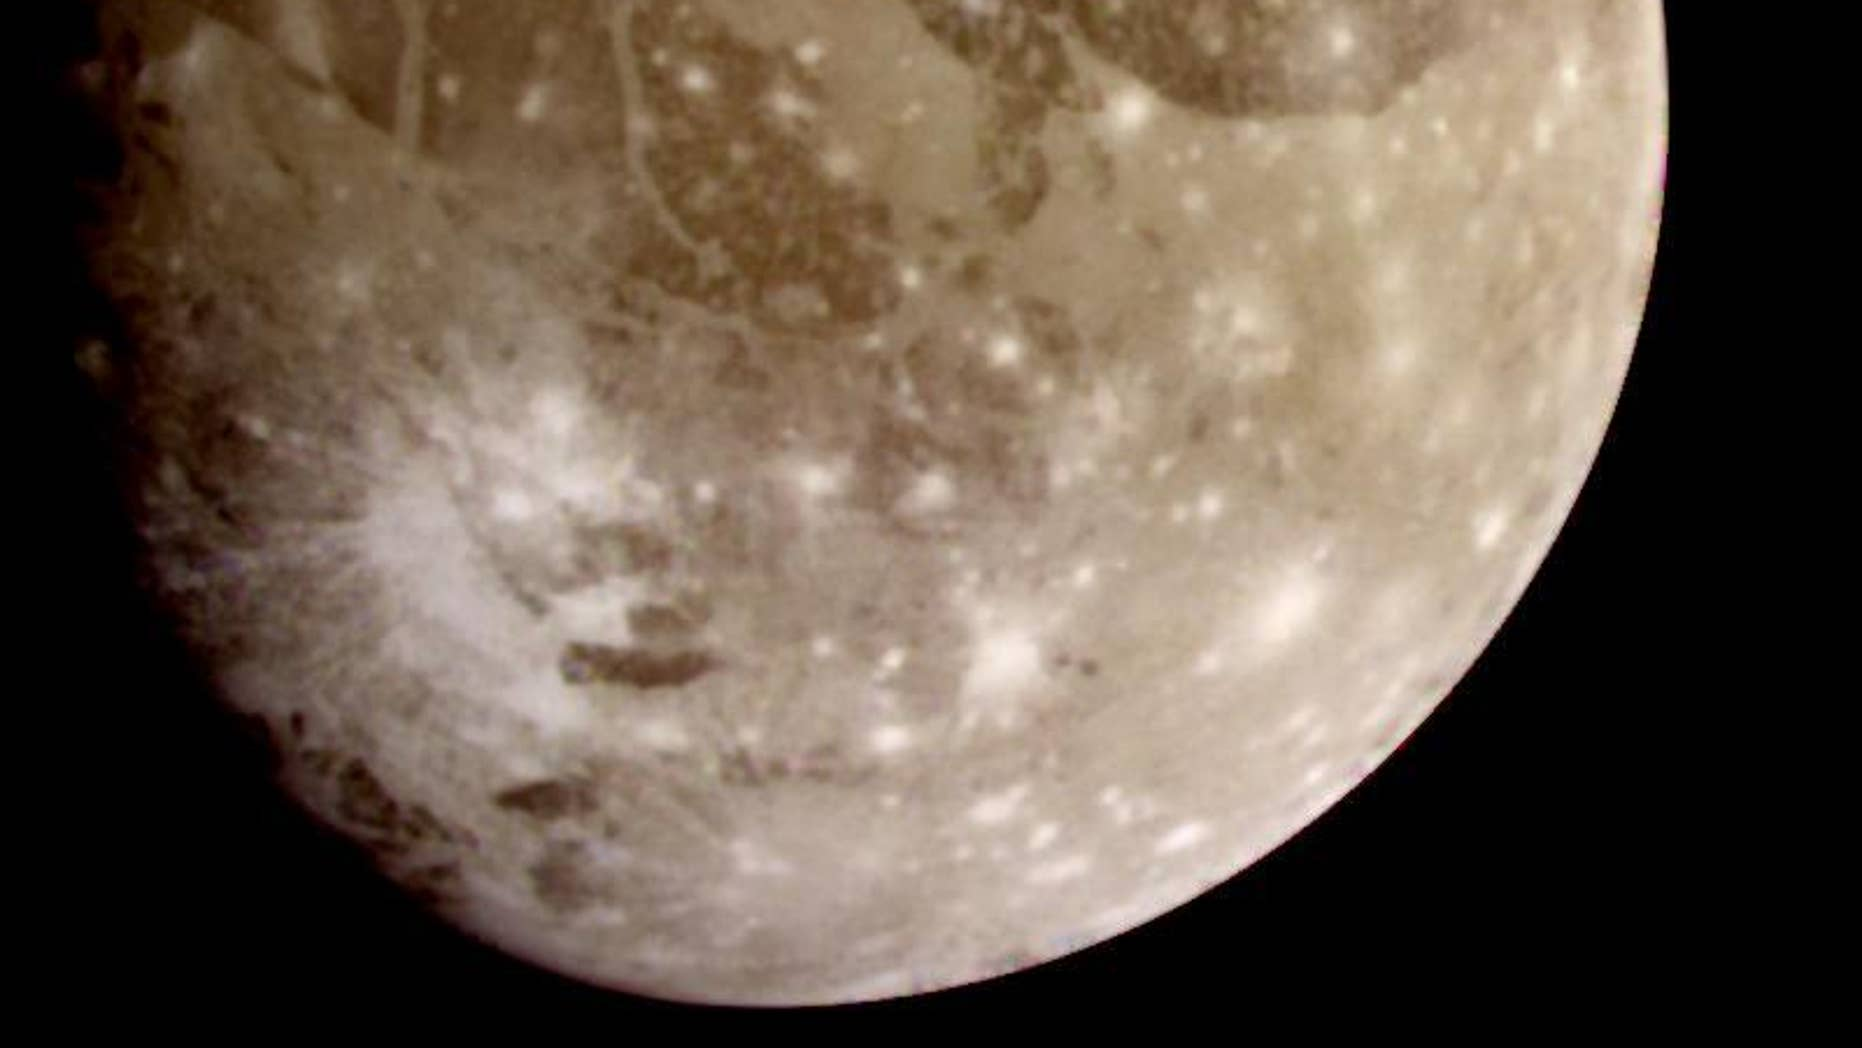 Jupiter's moon Ganymede. A new study shows that the electromagnetic waves near Ganymede are extremely powerful.